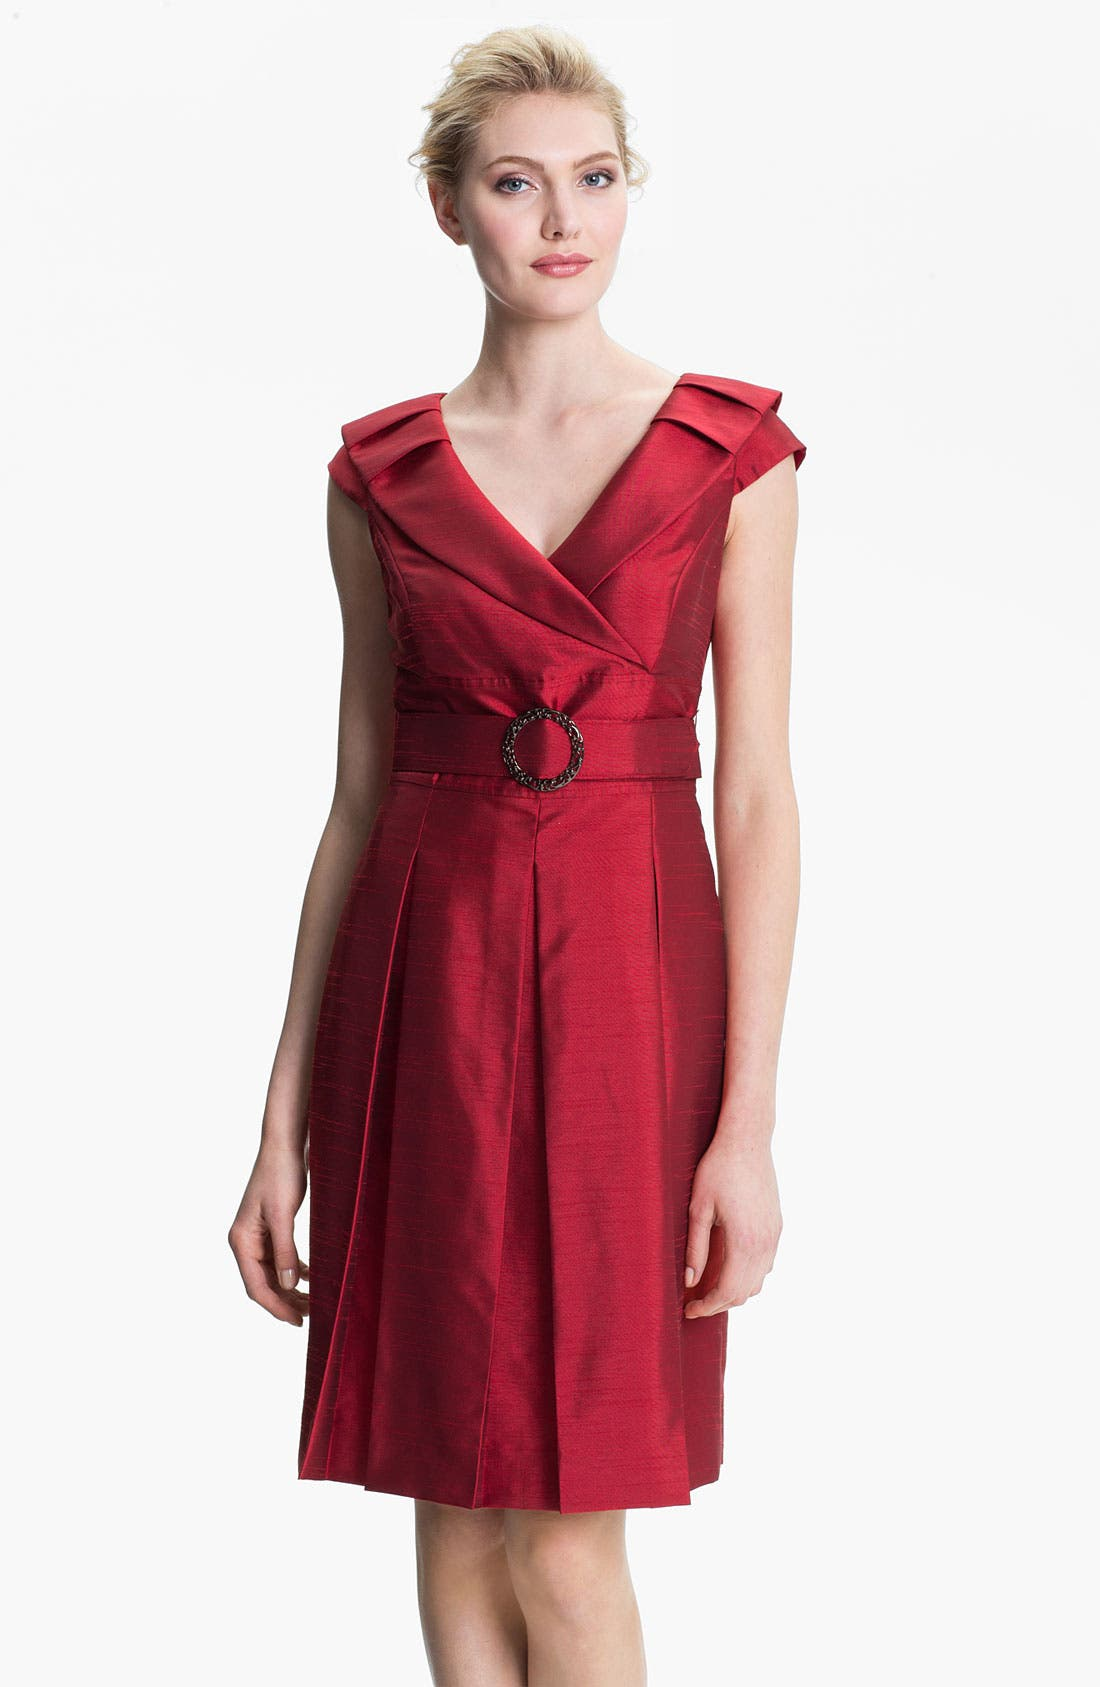 Alternate Image 1 Selected - Tahari Belted Portrait Collar Fit & Flare Dress (Petite)